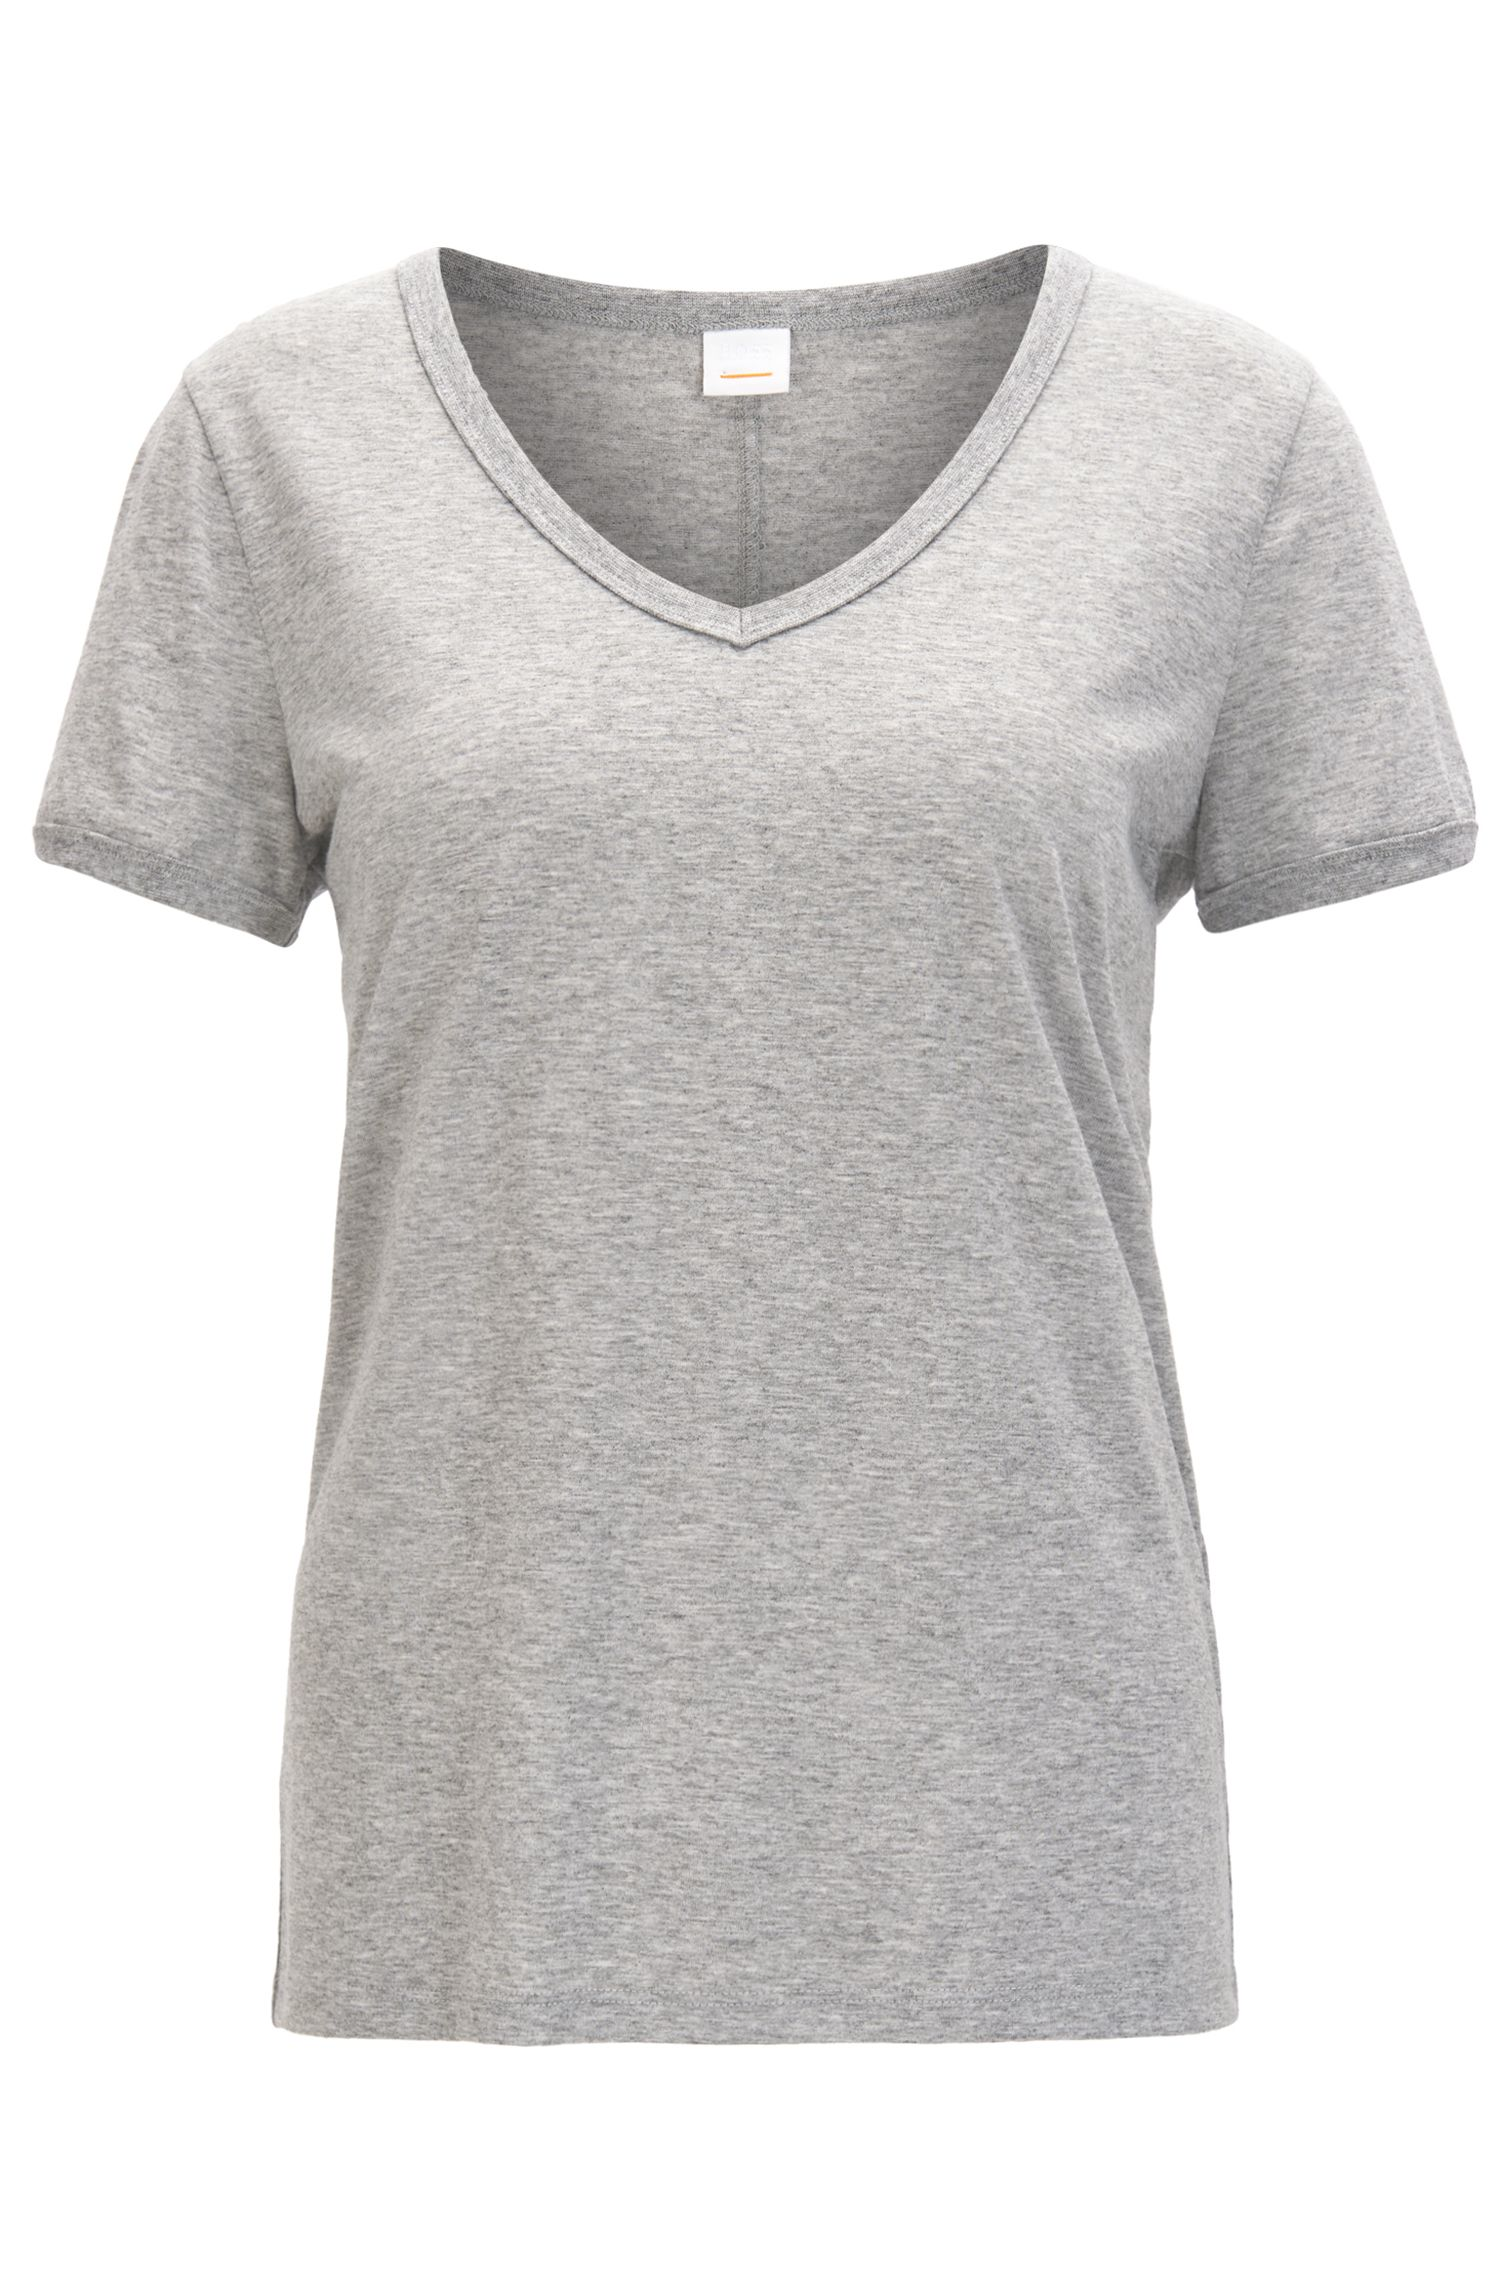 Regular-fit T-shirt van stretchmateriaal met V-hals